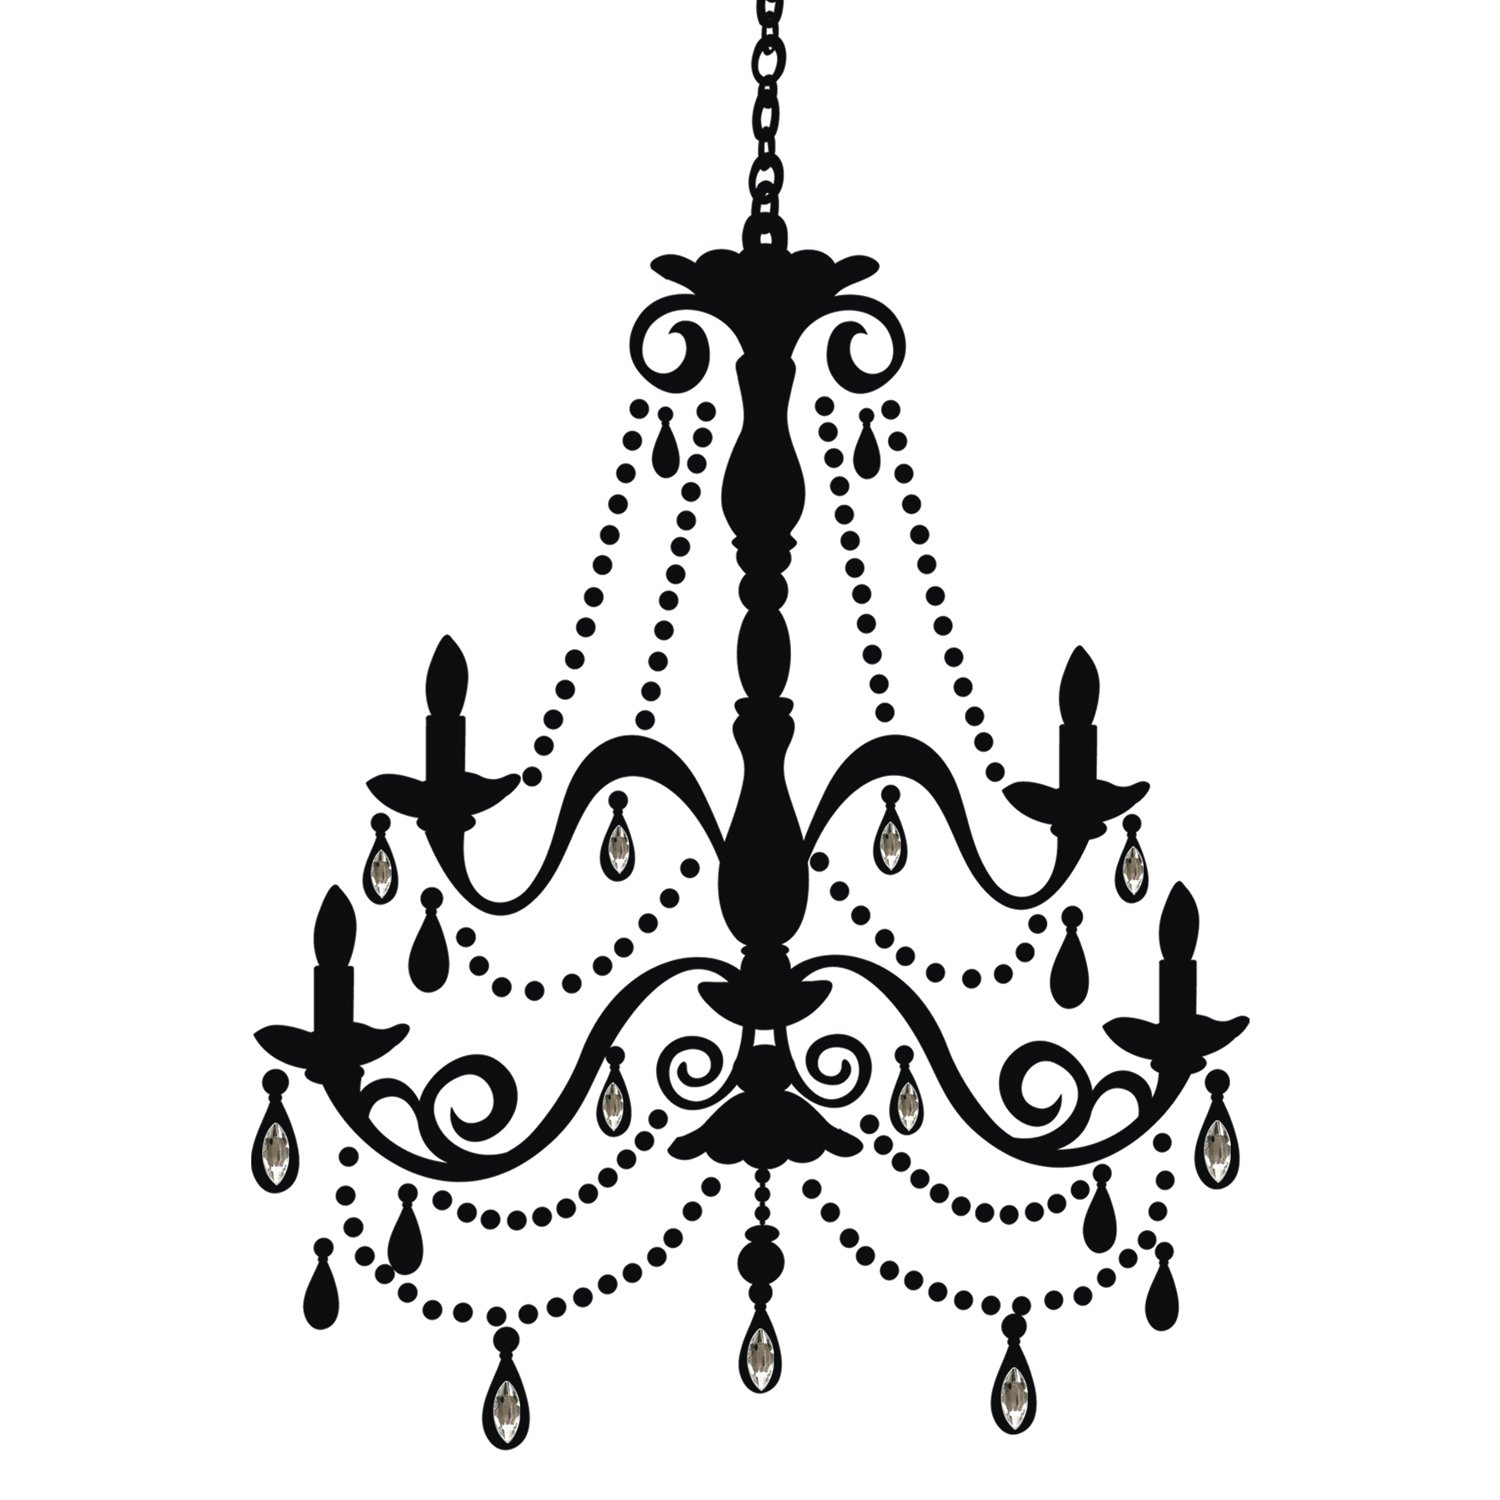 roommates rmk1805gm chandelier with gems peel and stick giant wall decal decorative wall appliques amazoncom